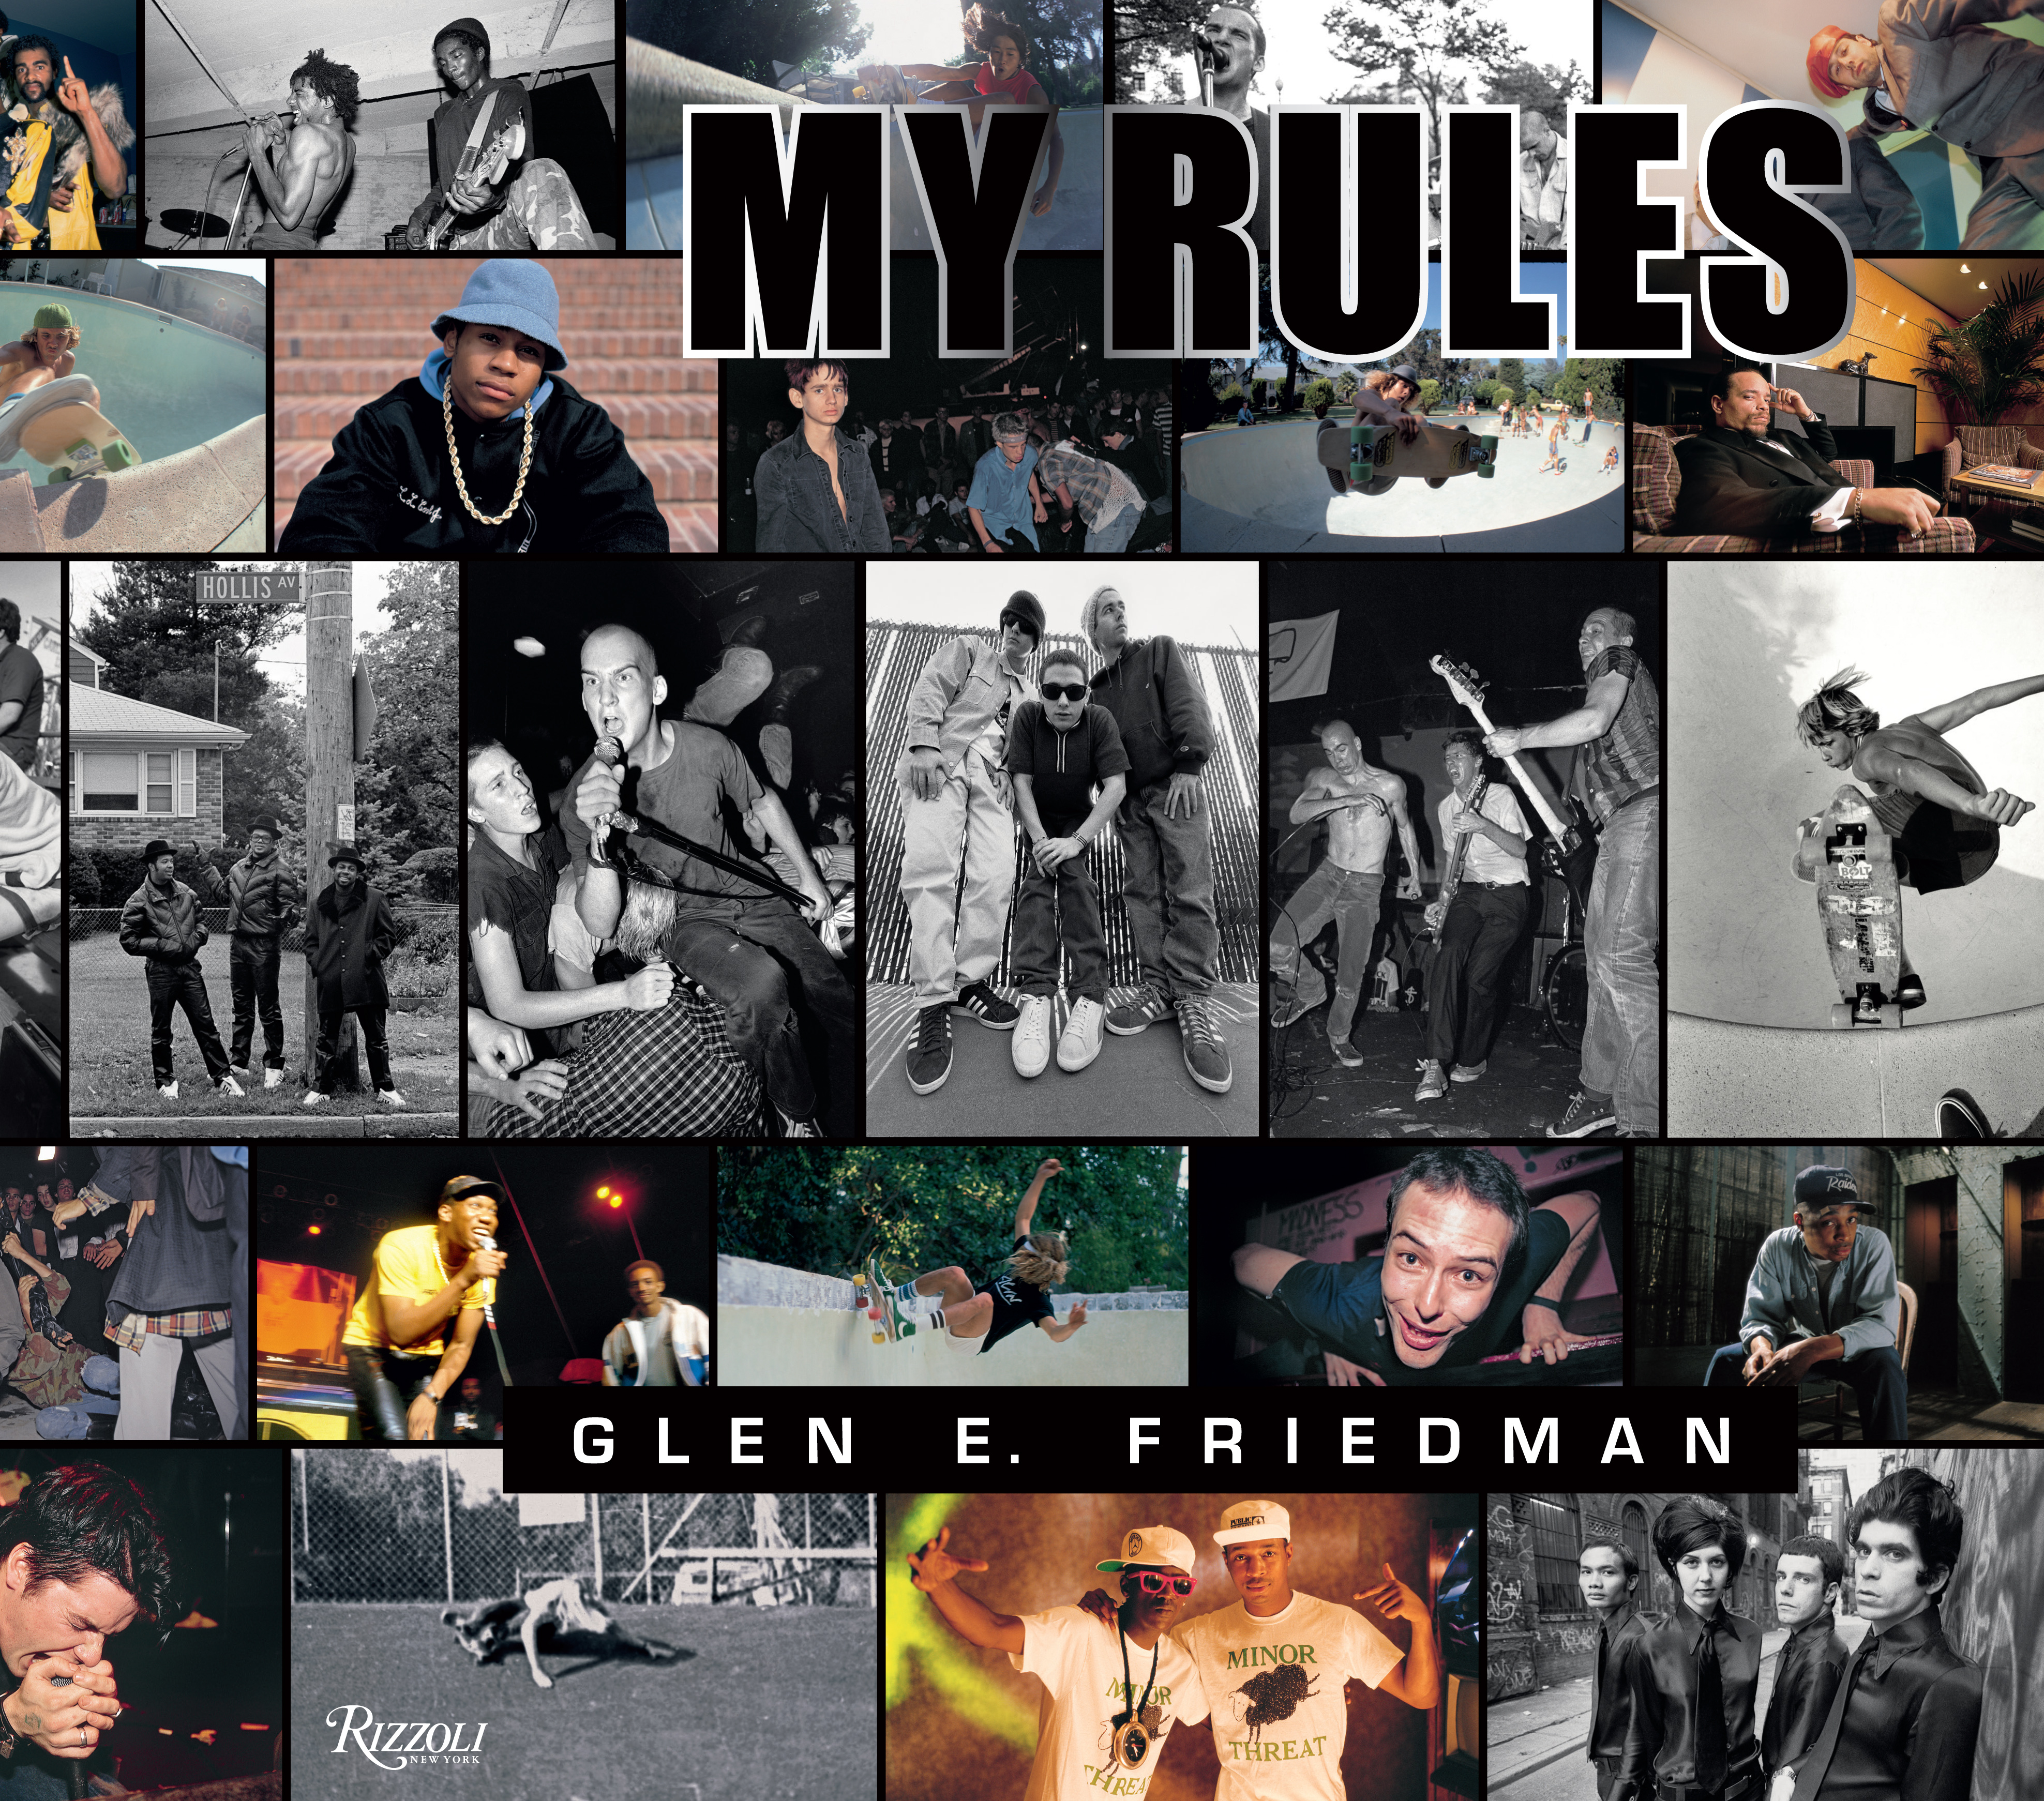 Book Launch: My Rules by Glen E. Friedman, with Ian Svenonius and special guests